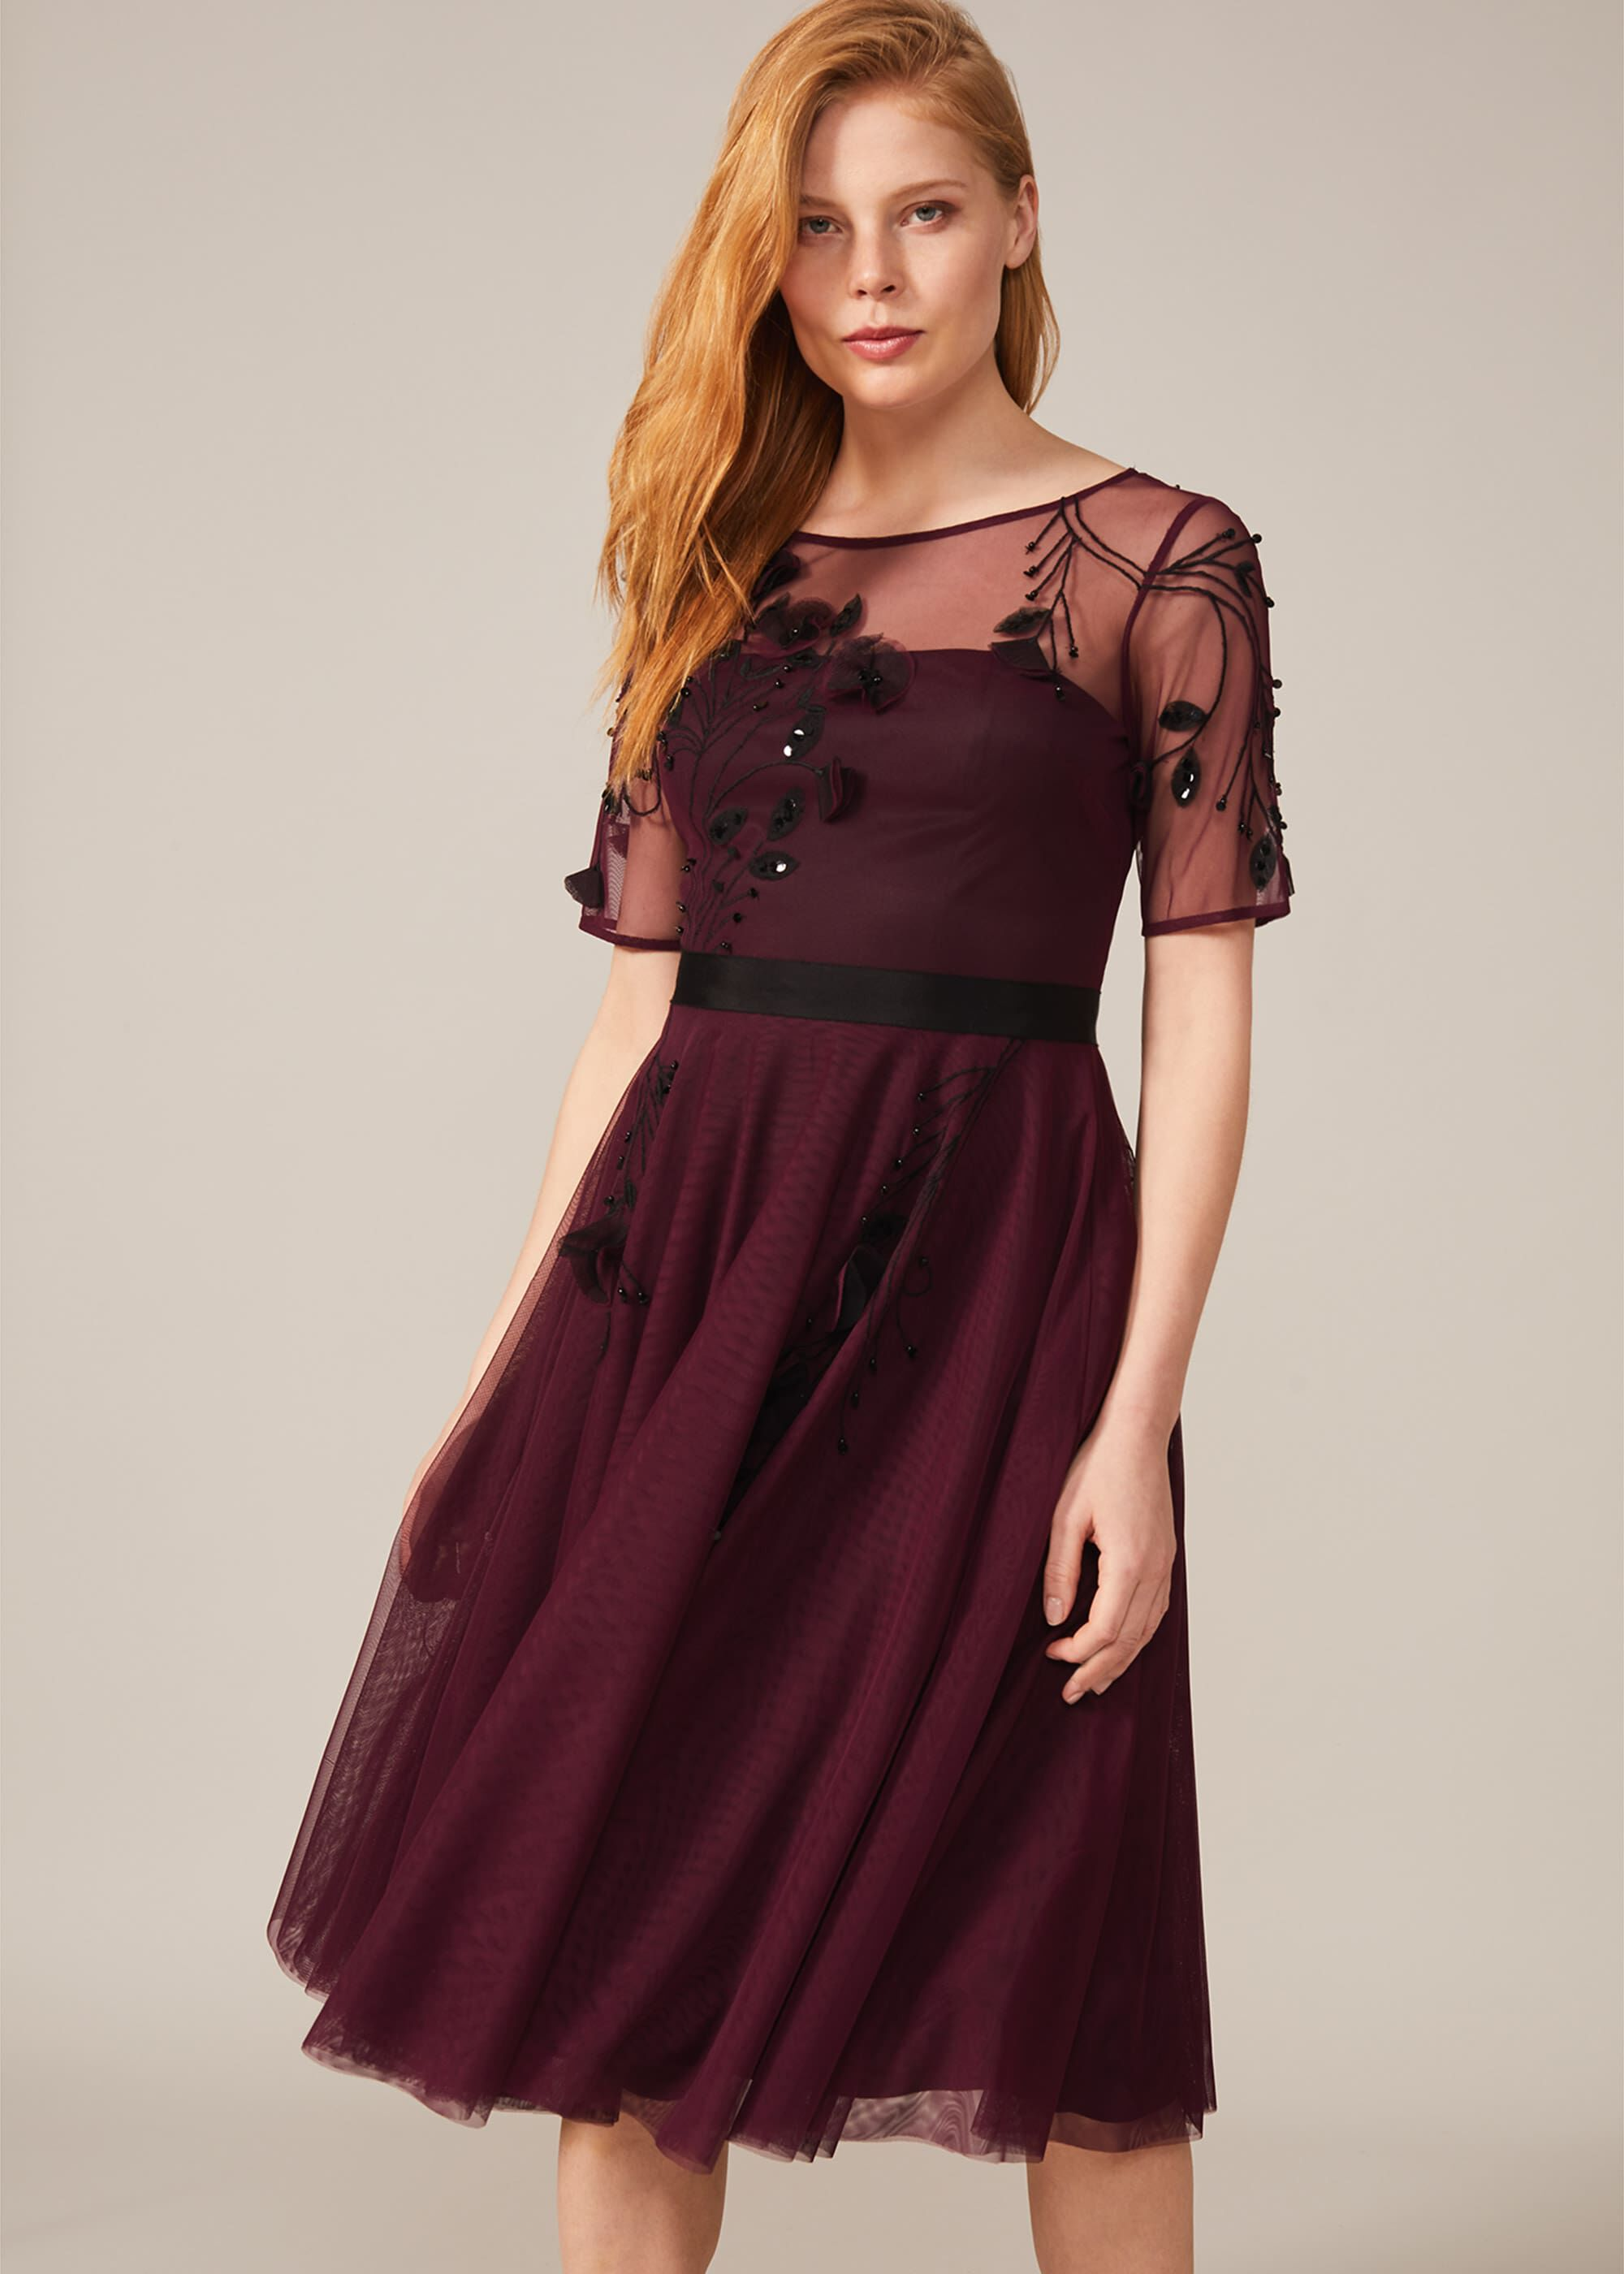 Phase Eight Felicia Embroidered Tulle Dress, Red, Occasion Dress